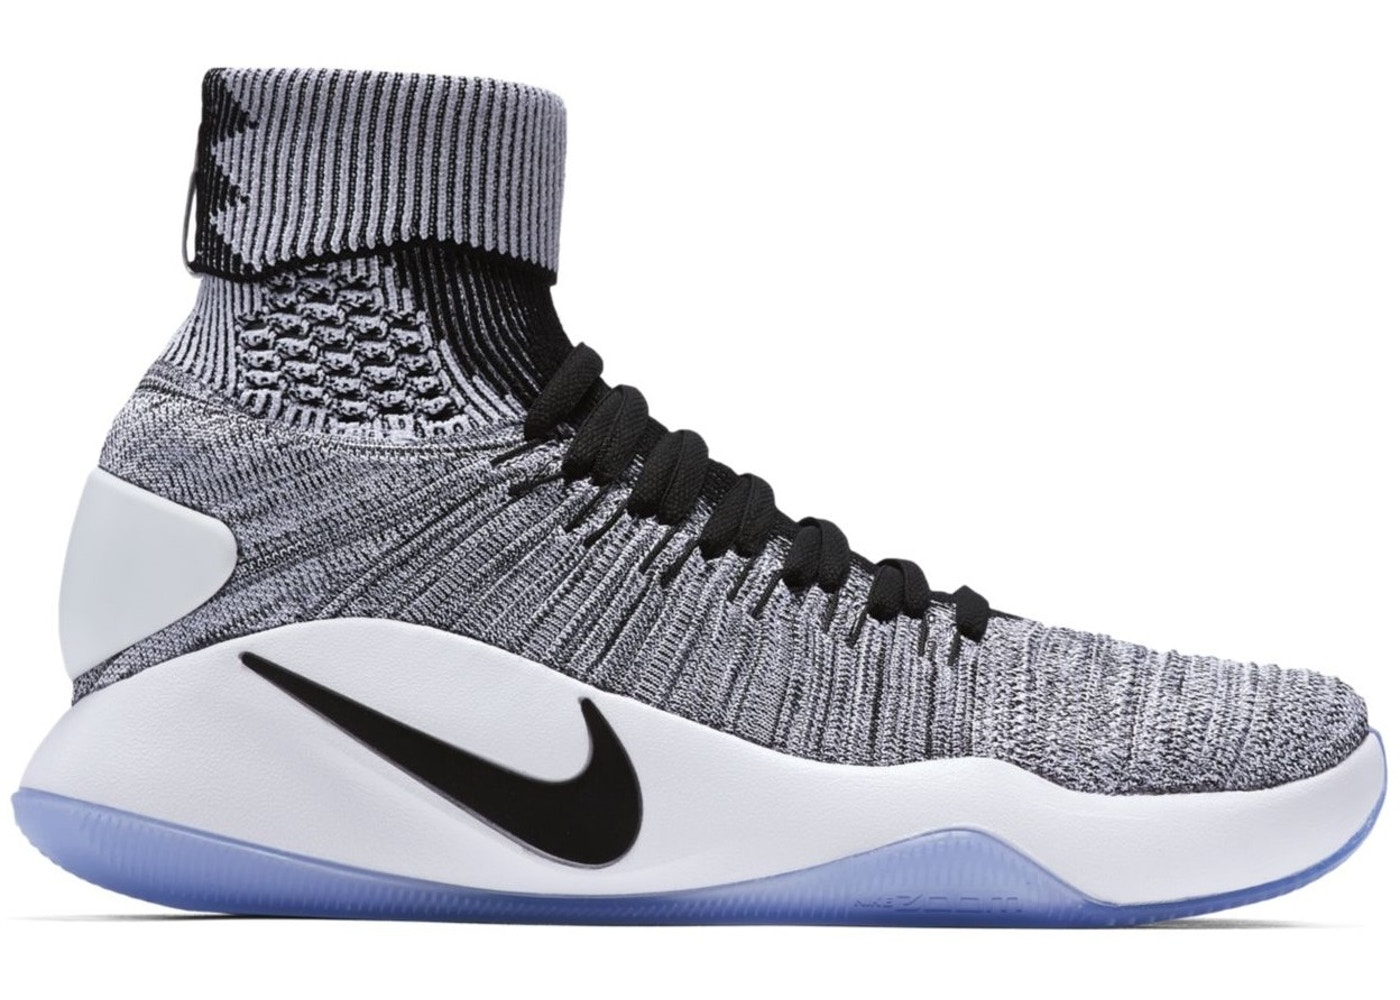 purchase cheap 49241 5f660 Buy Nike Basketball Hyperdunk Shoes   Deadstock Sneakers